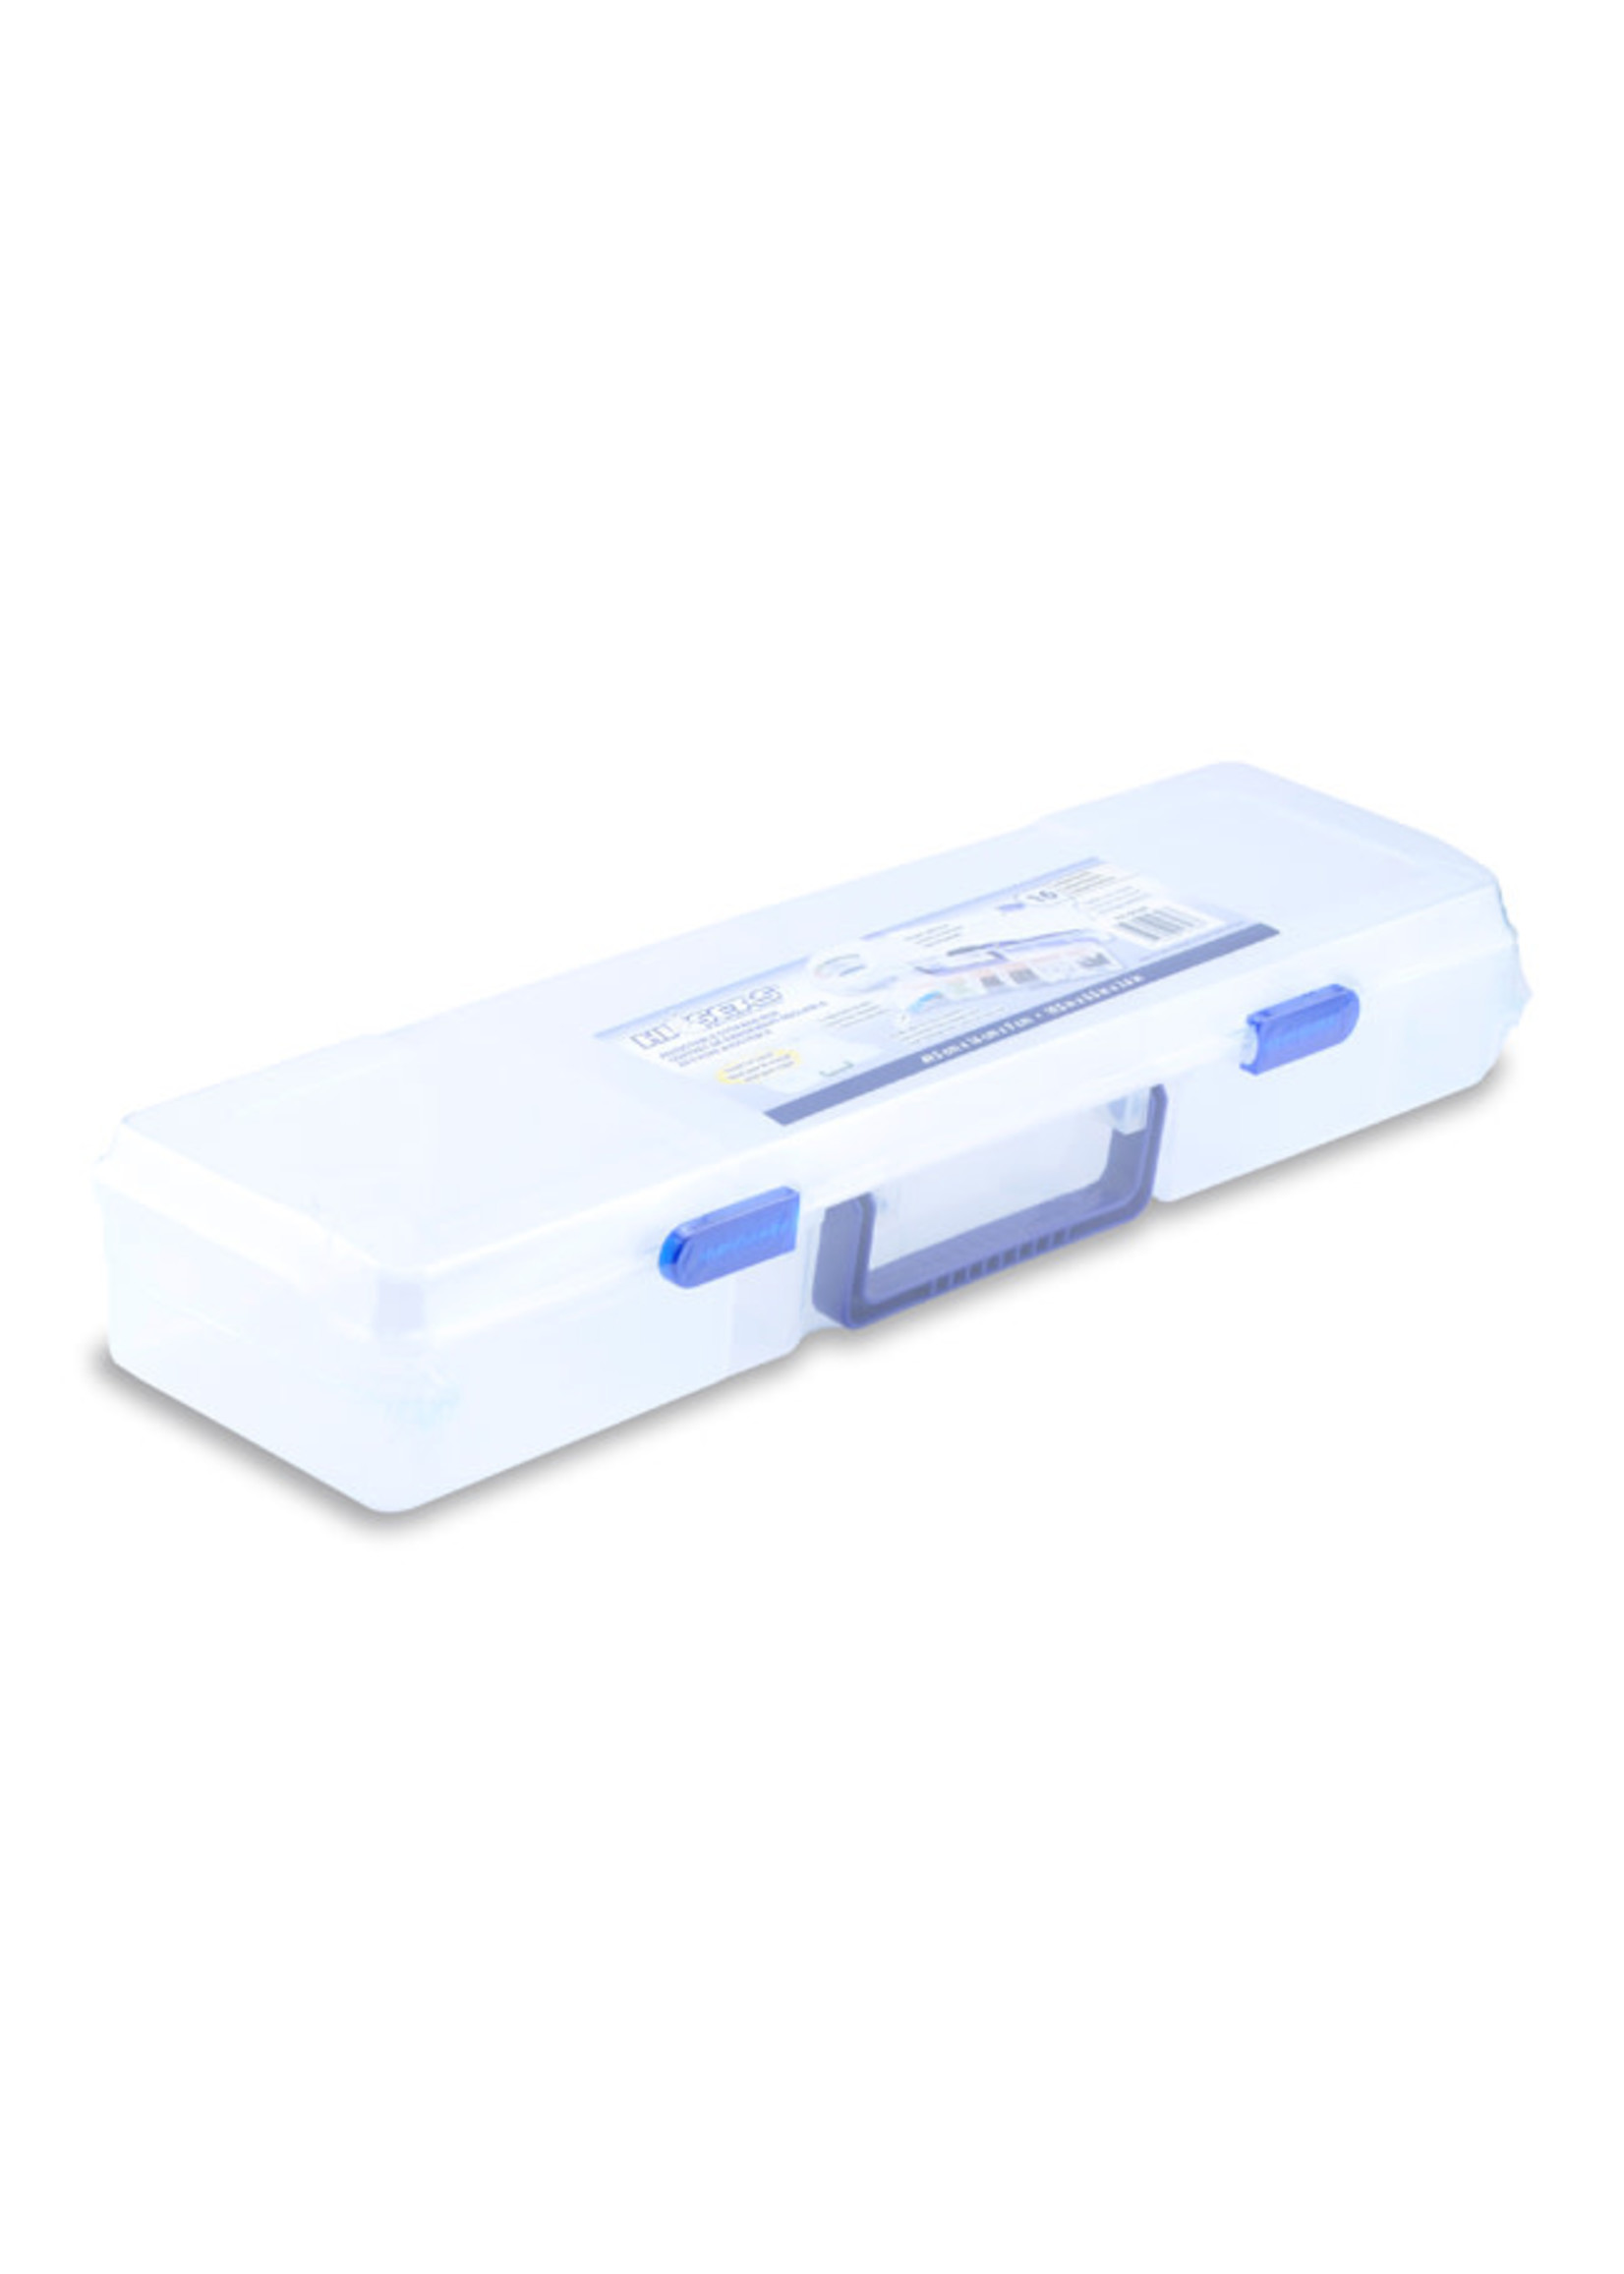 """Tackle Box 12 Moveable Dividers 1 Removable Tray 19.5""""x 5.5"""" x 3.63"""""""